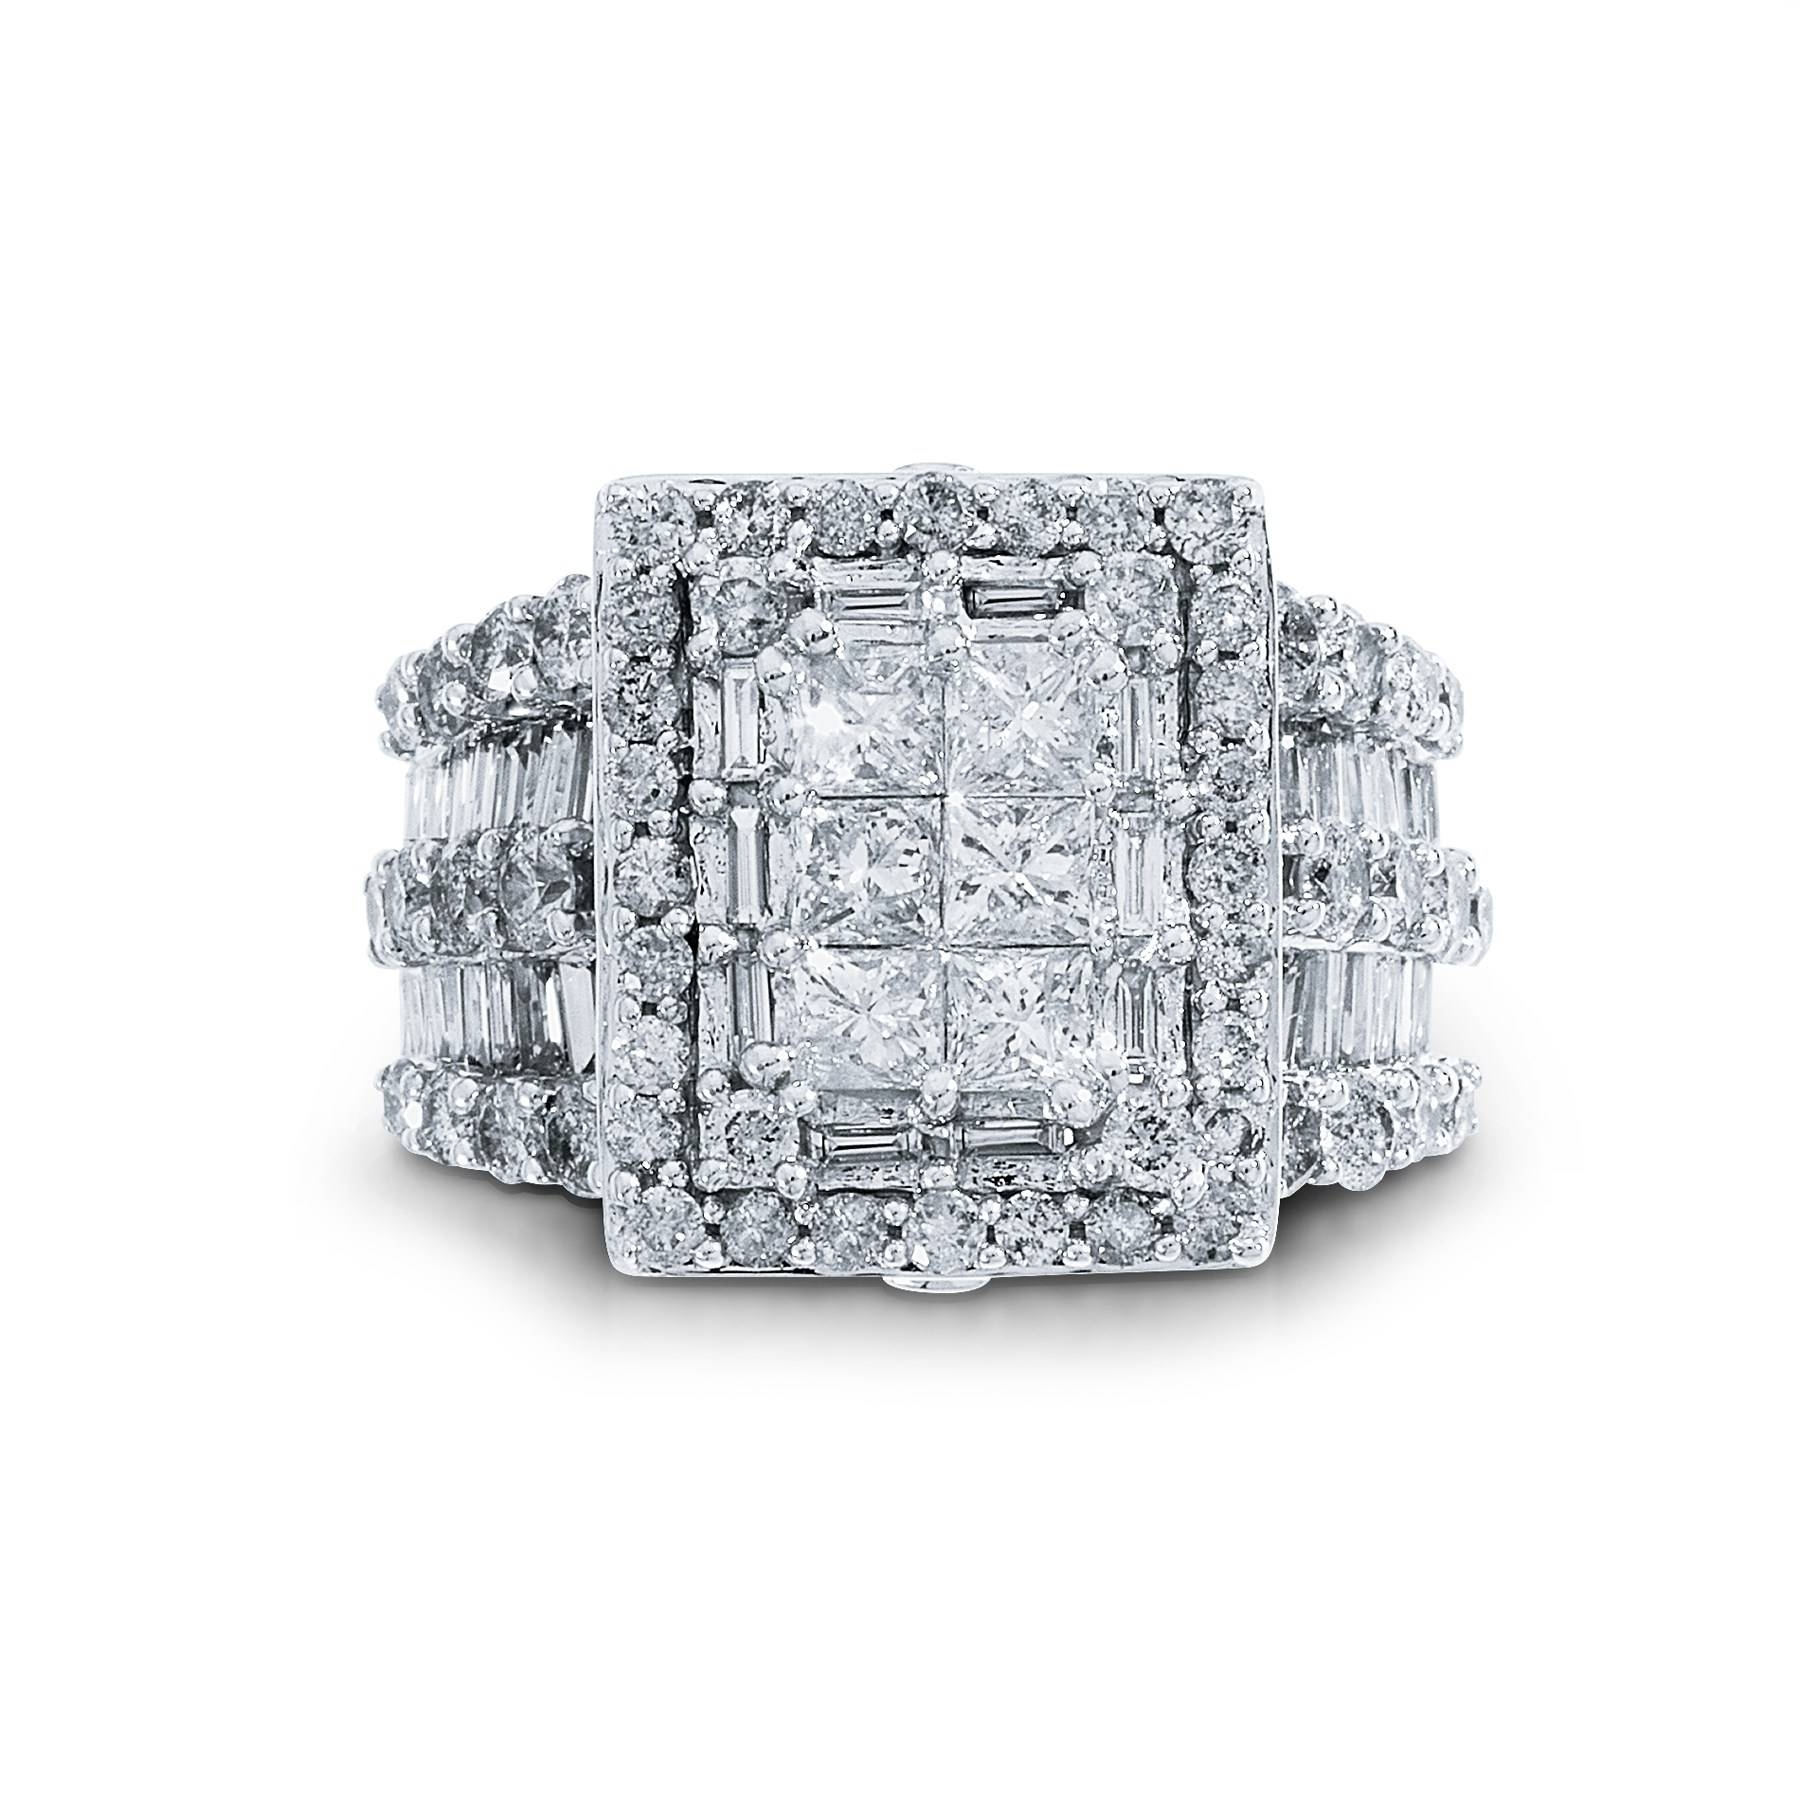 Engagement Rings : P P Stunning Engagement Rings Sears Tradition Intended For David Tutera Engagement Rings (View 3 of 15)